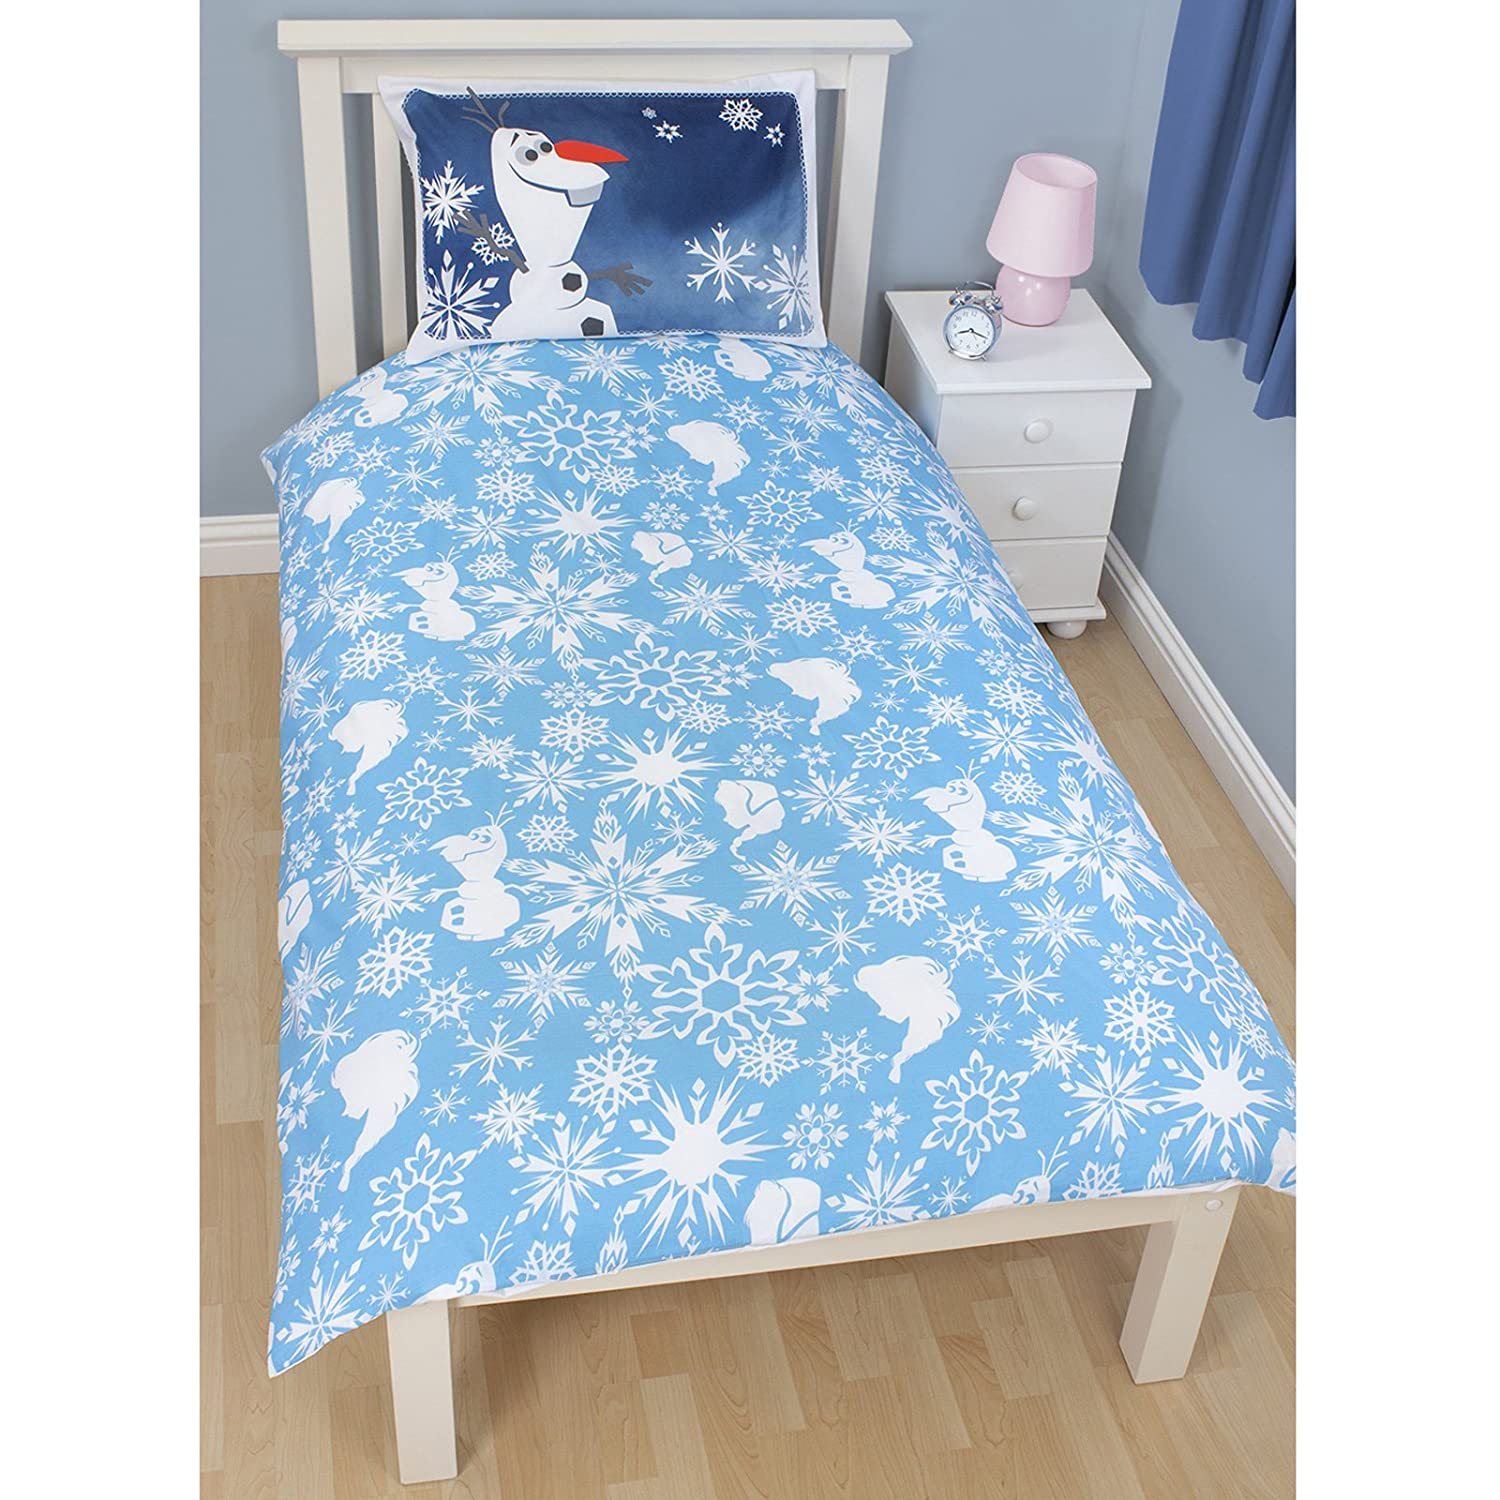 Disney Frozen Elsa Single Panel Duvet